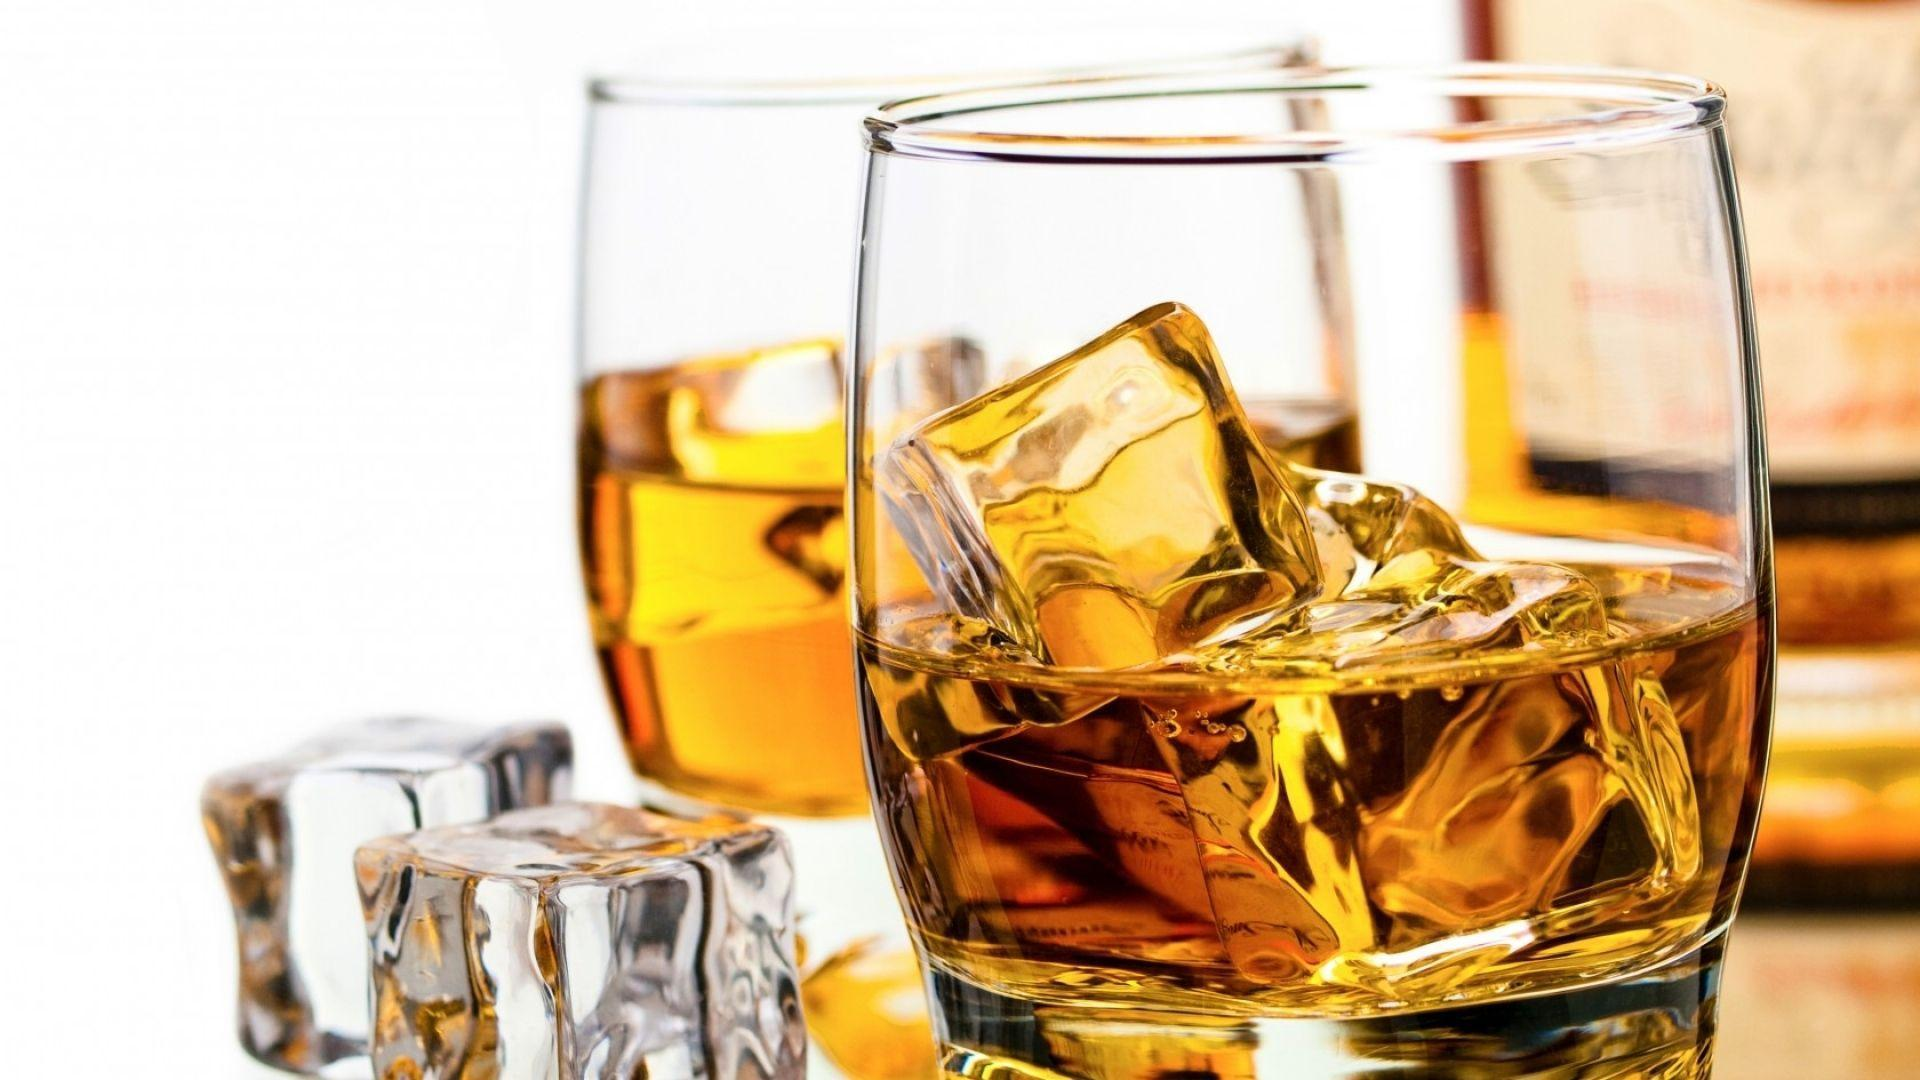 whisky 1080p wallpapers hd - photo #2